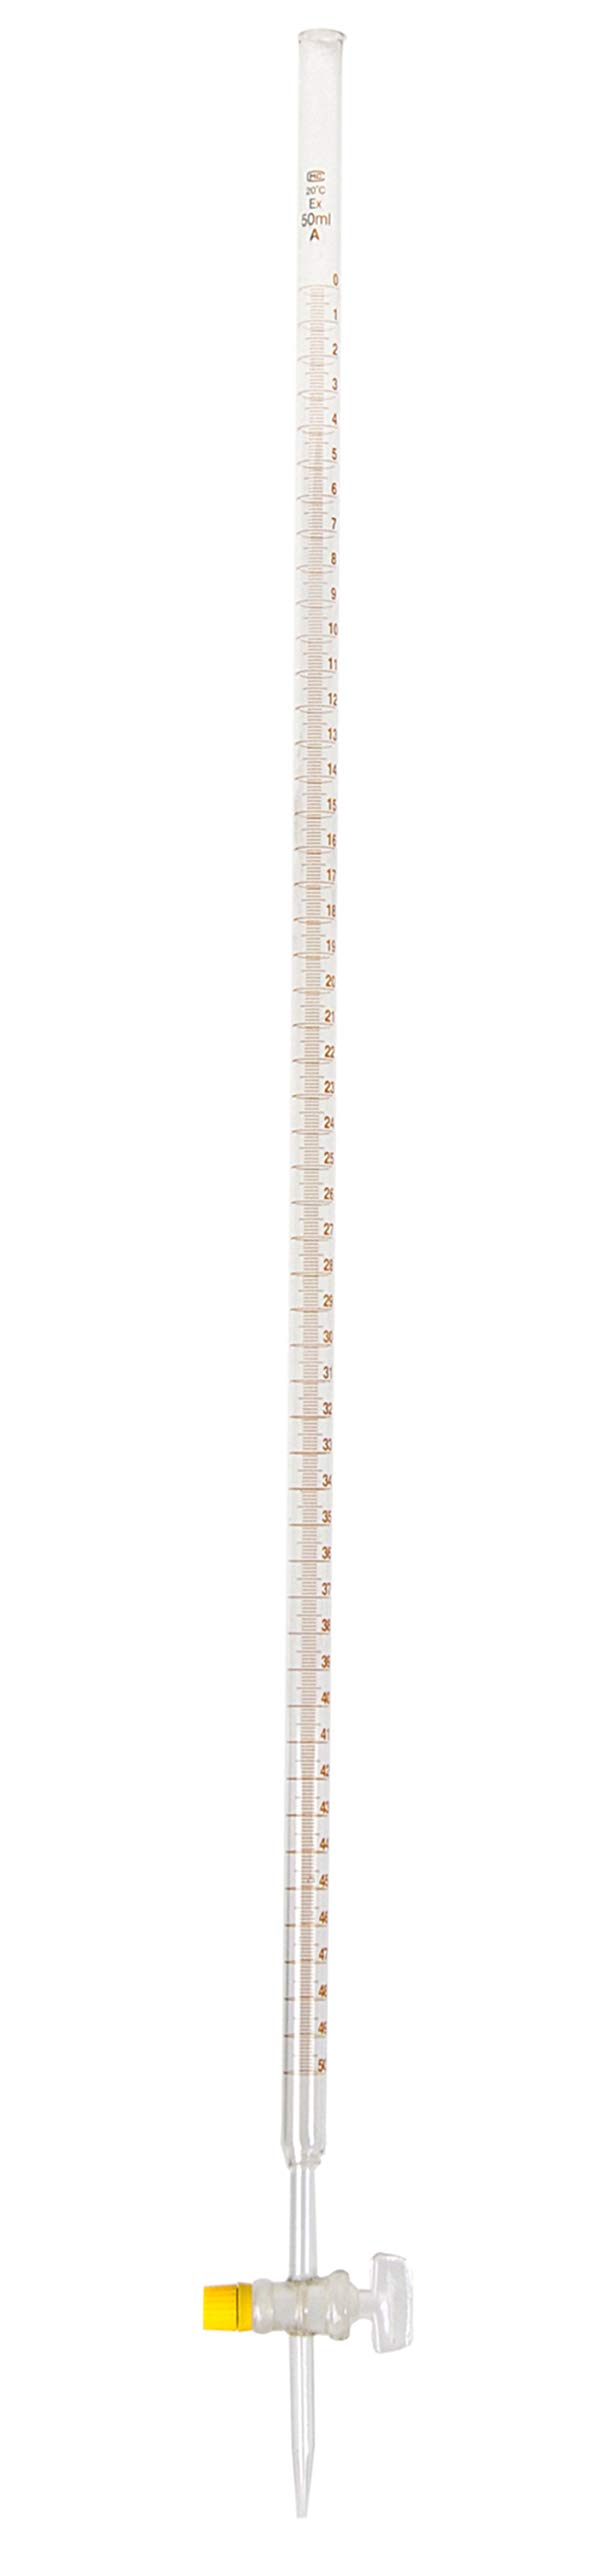 American Educational Borosilicate Glass 50mL Burette, with Ground Glass Stopcock by American Educational Products